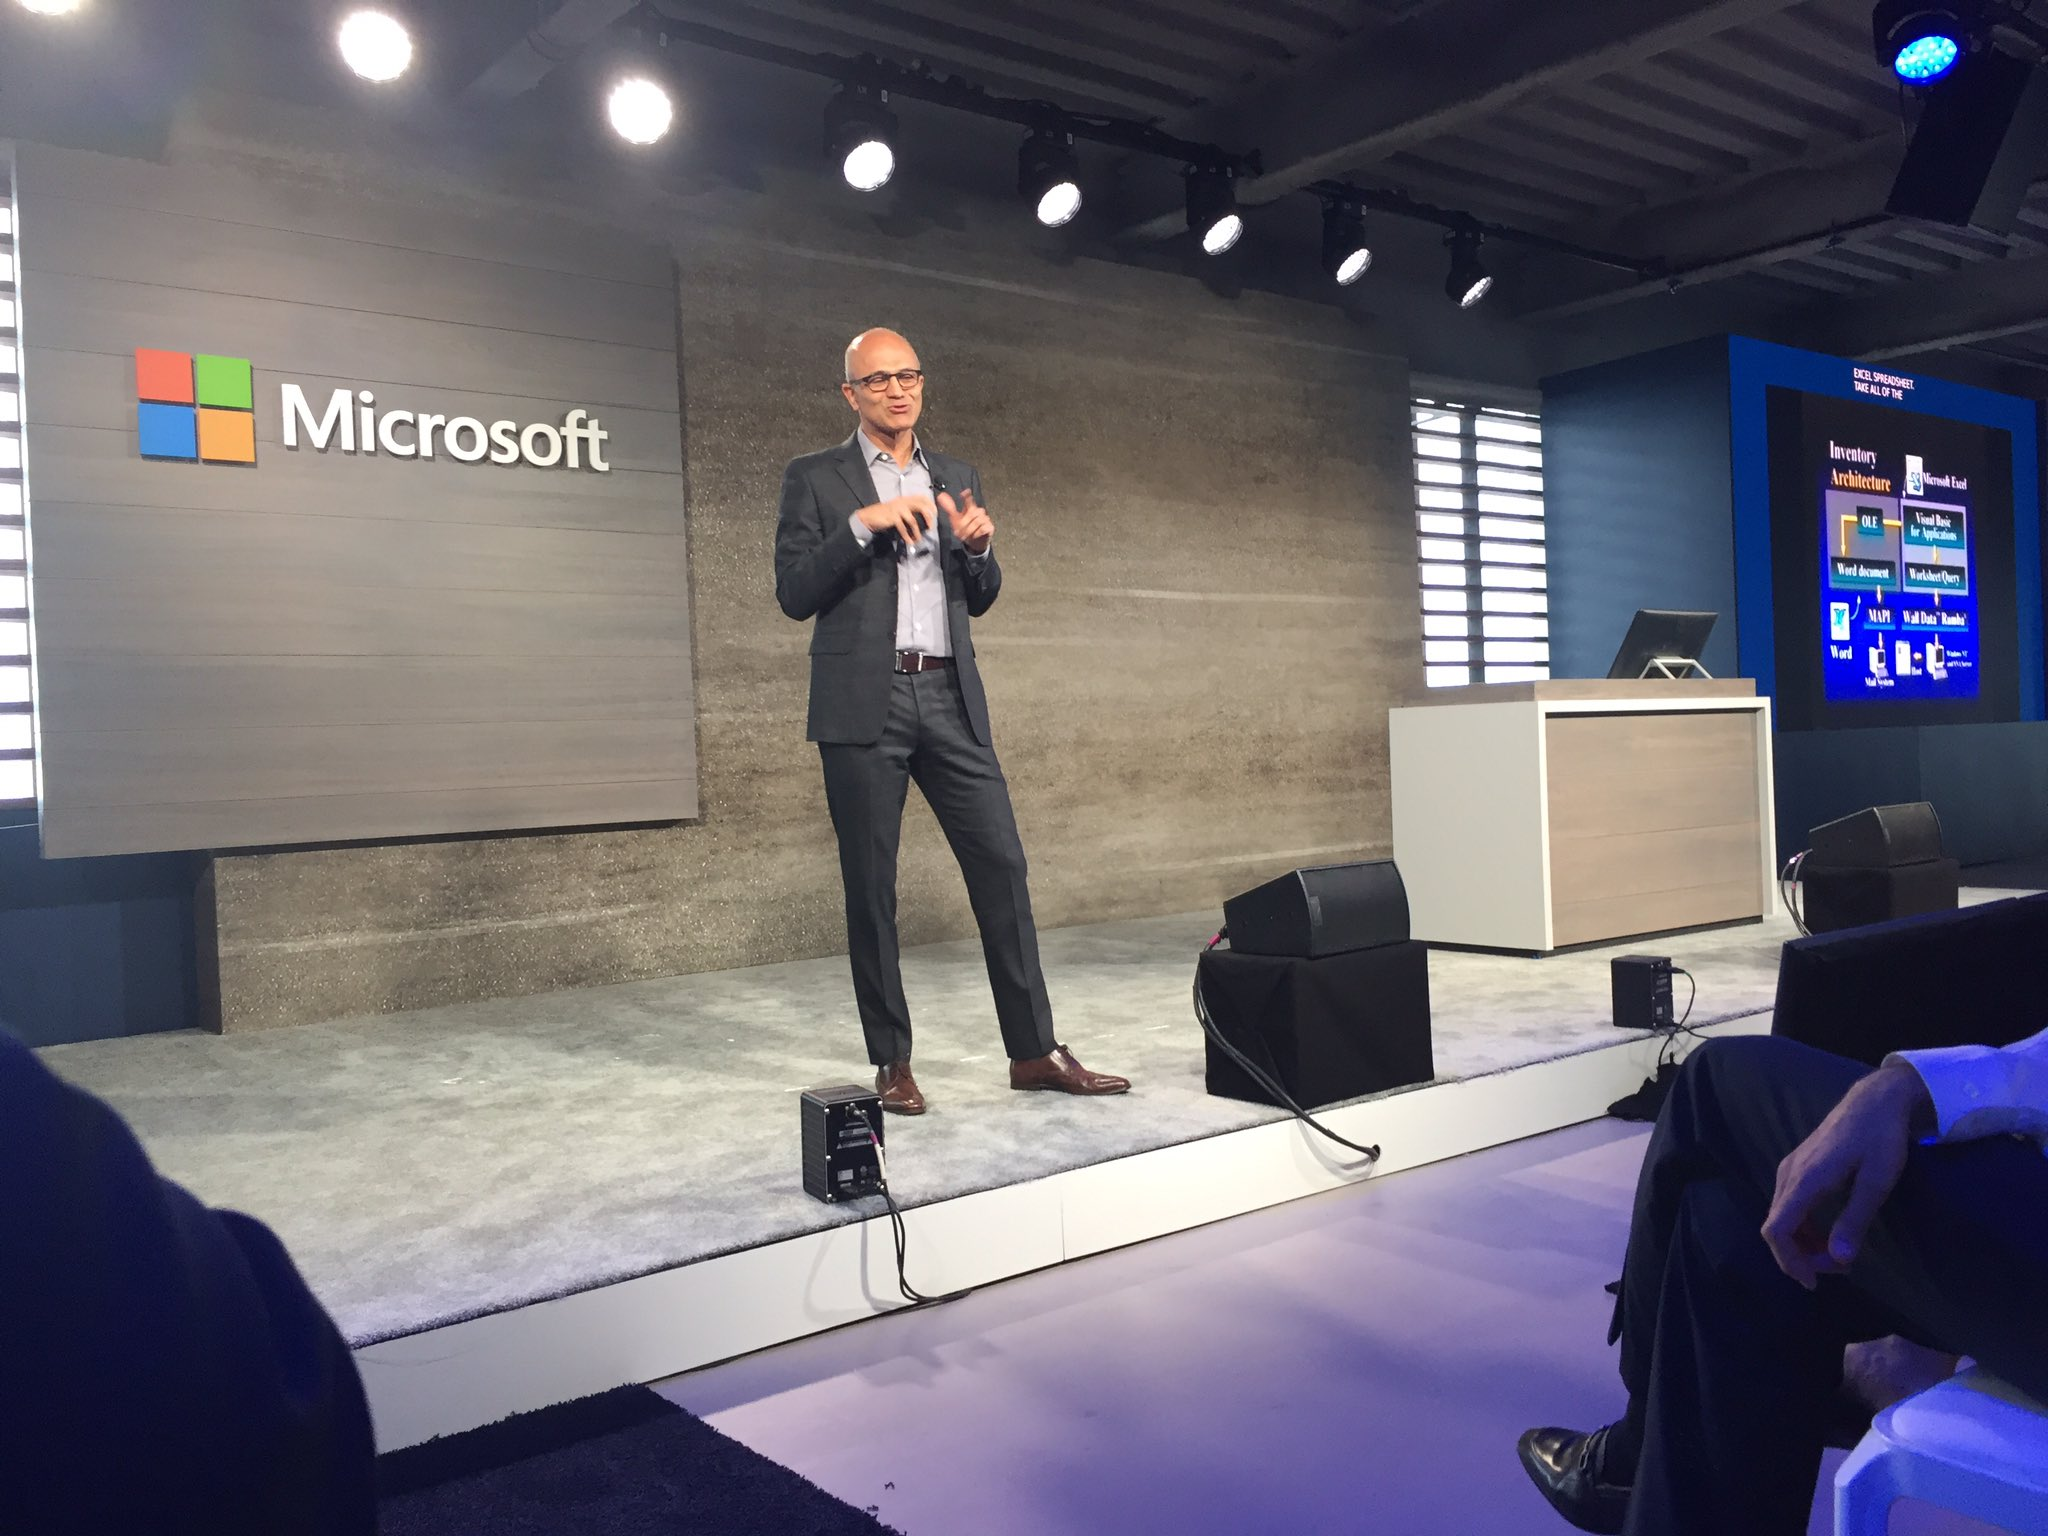 CEO Satya Nadella describes how MSFT will succeed through their customers' success using their technology. #msbusinessfwd https://t.co/qok0HTDyB3